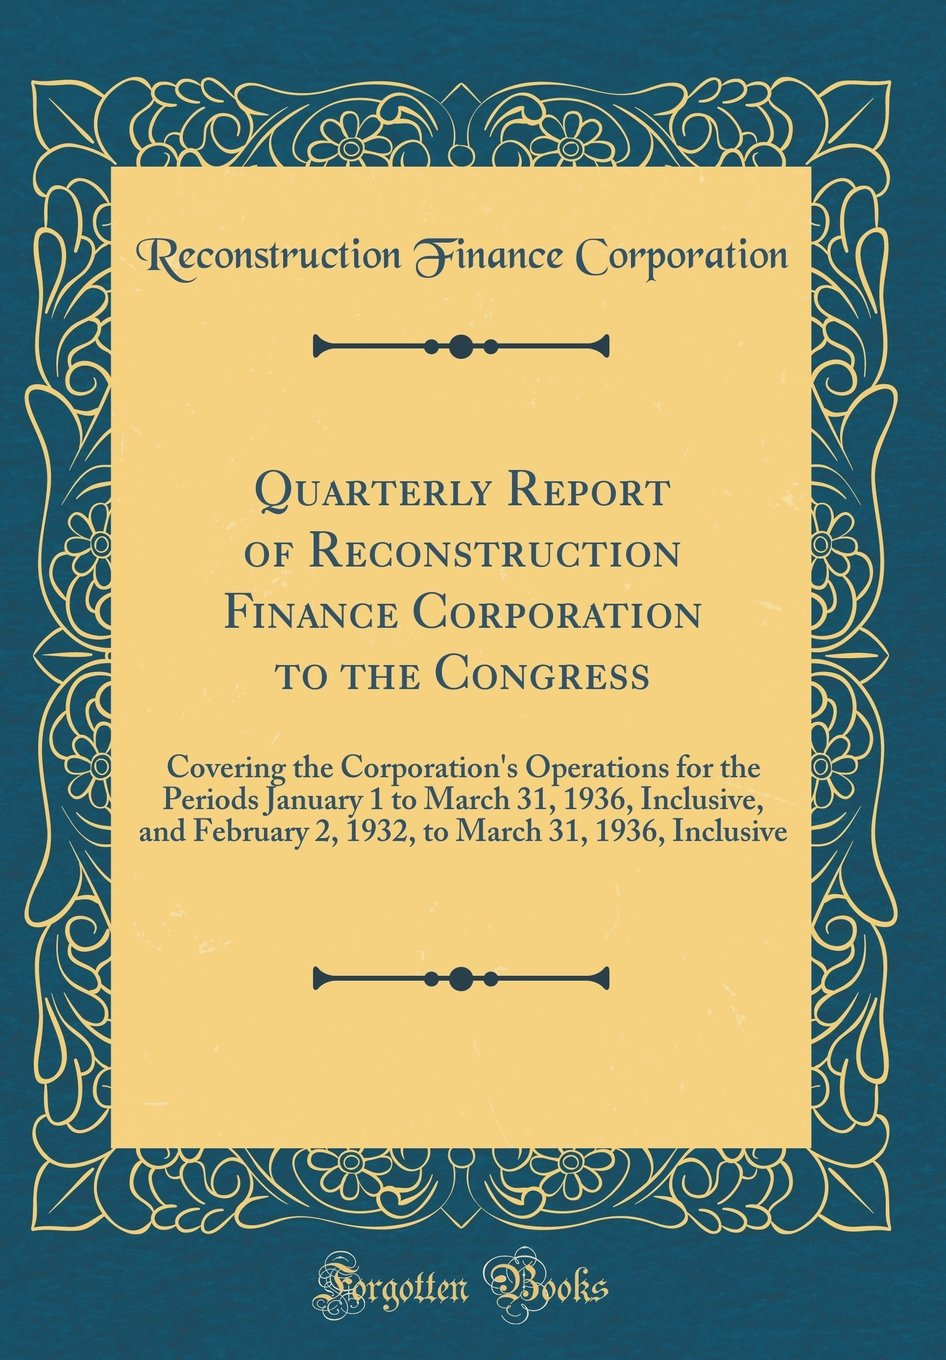 Quarterly Report of Reconstruction Finance Corporation to the Congress: Covering the Corporation's Operations for the Periods January 1 to March 31, ... March 31, 1936, Inclusive (Classic Reprint) PDF